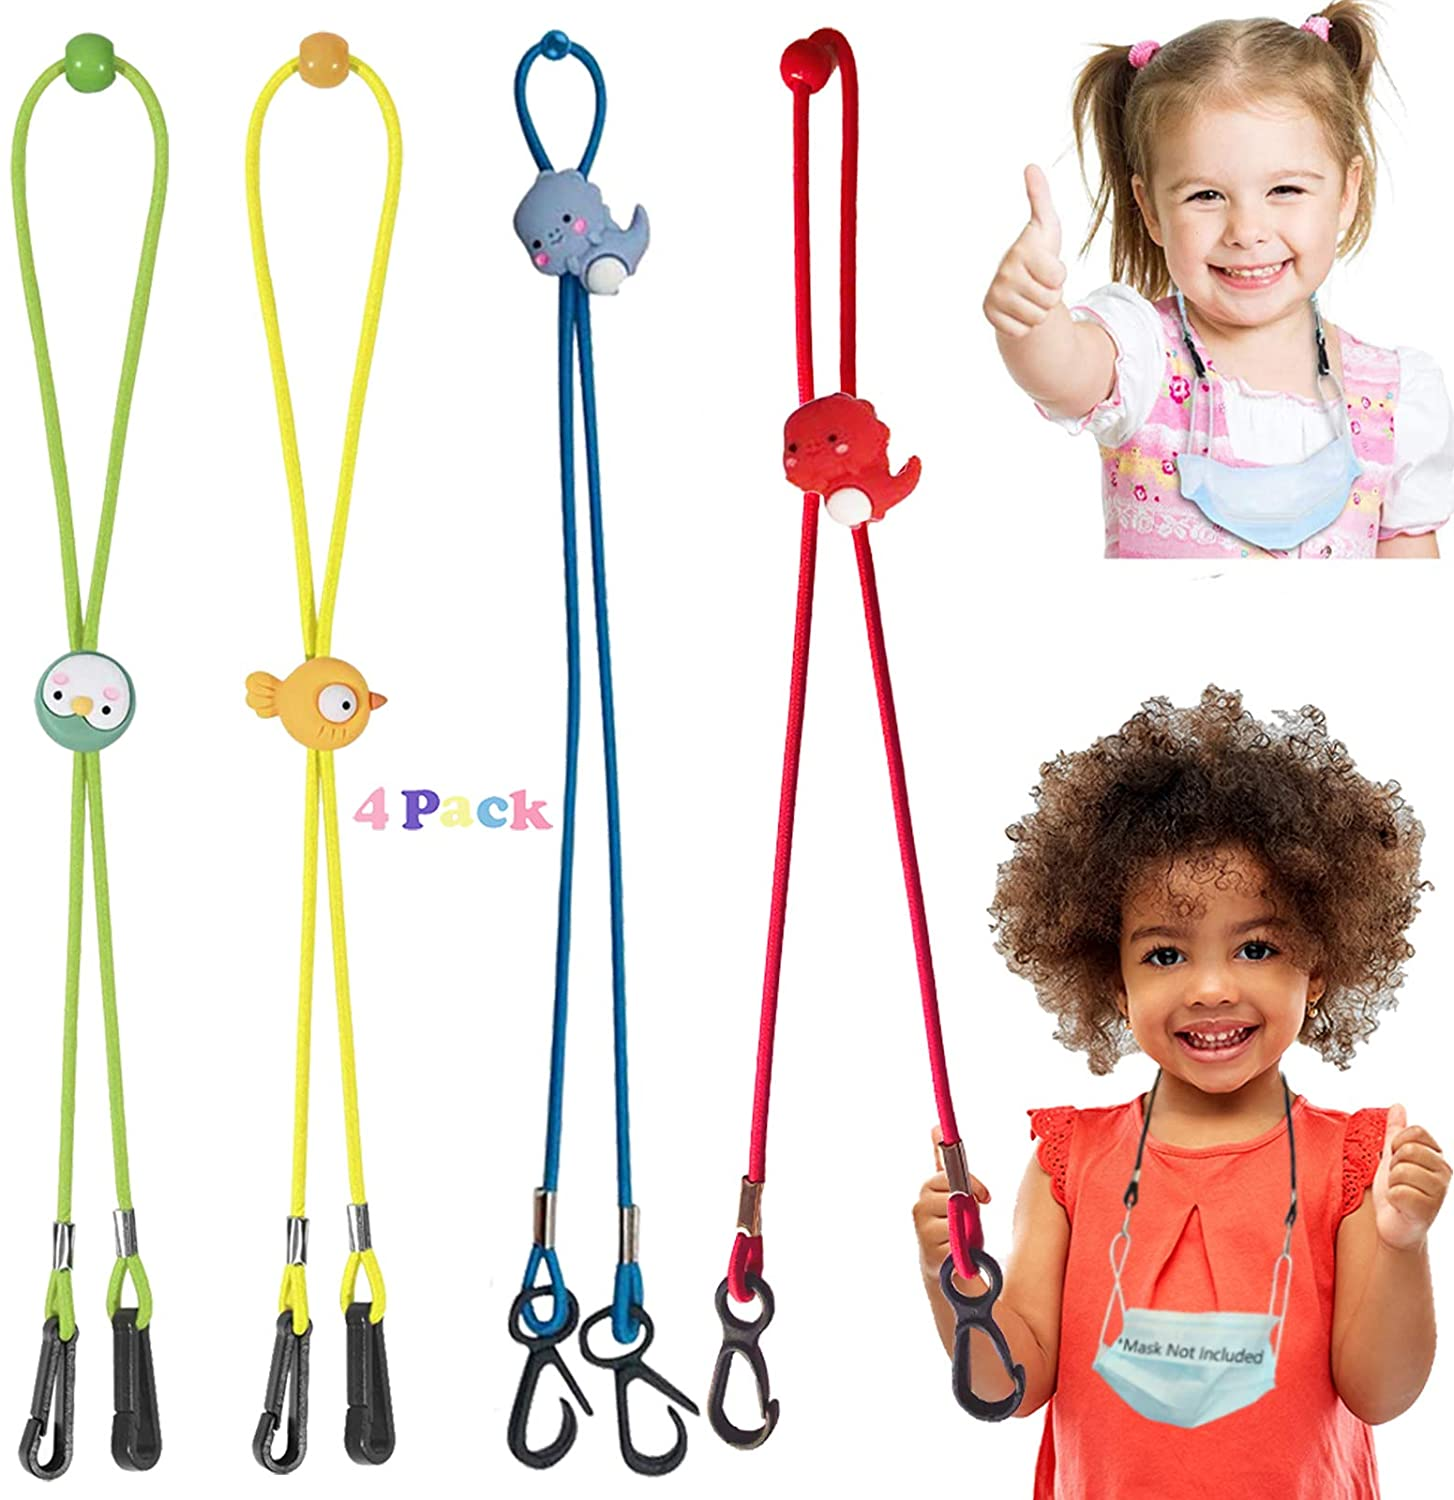 wellMaxlc Cute Face Mask Lanyards Adjustable Lanyard Straps Mask Straps for Kids Adults Handy Comfortable Around The Neck Facemask Rest Relieve Ear Savers Holders Extender (4 PCS Multicolored Kids)